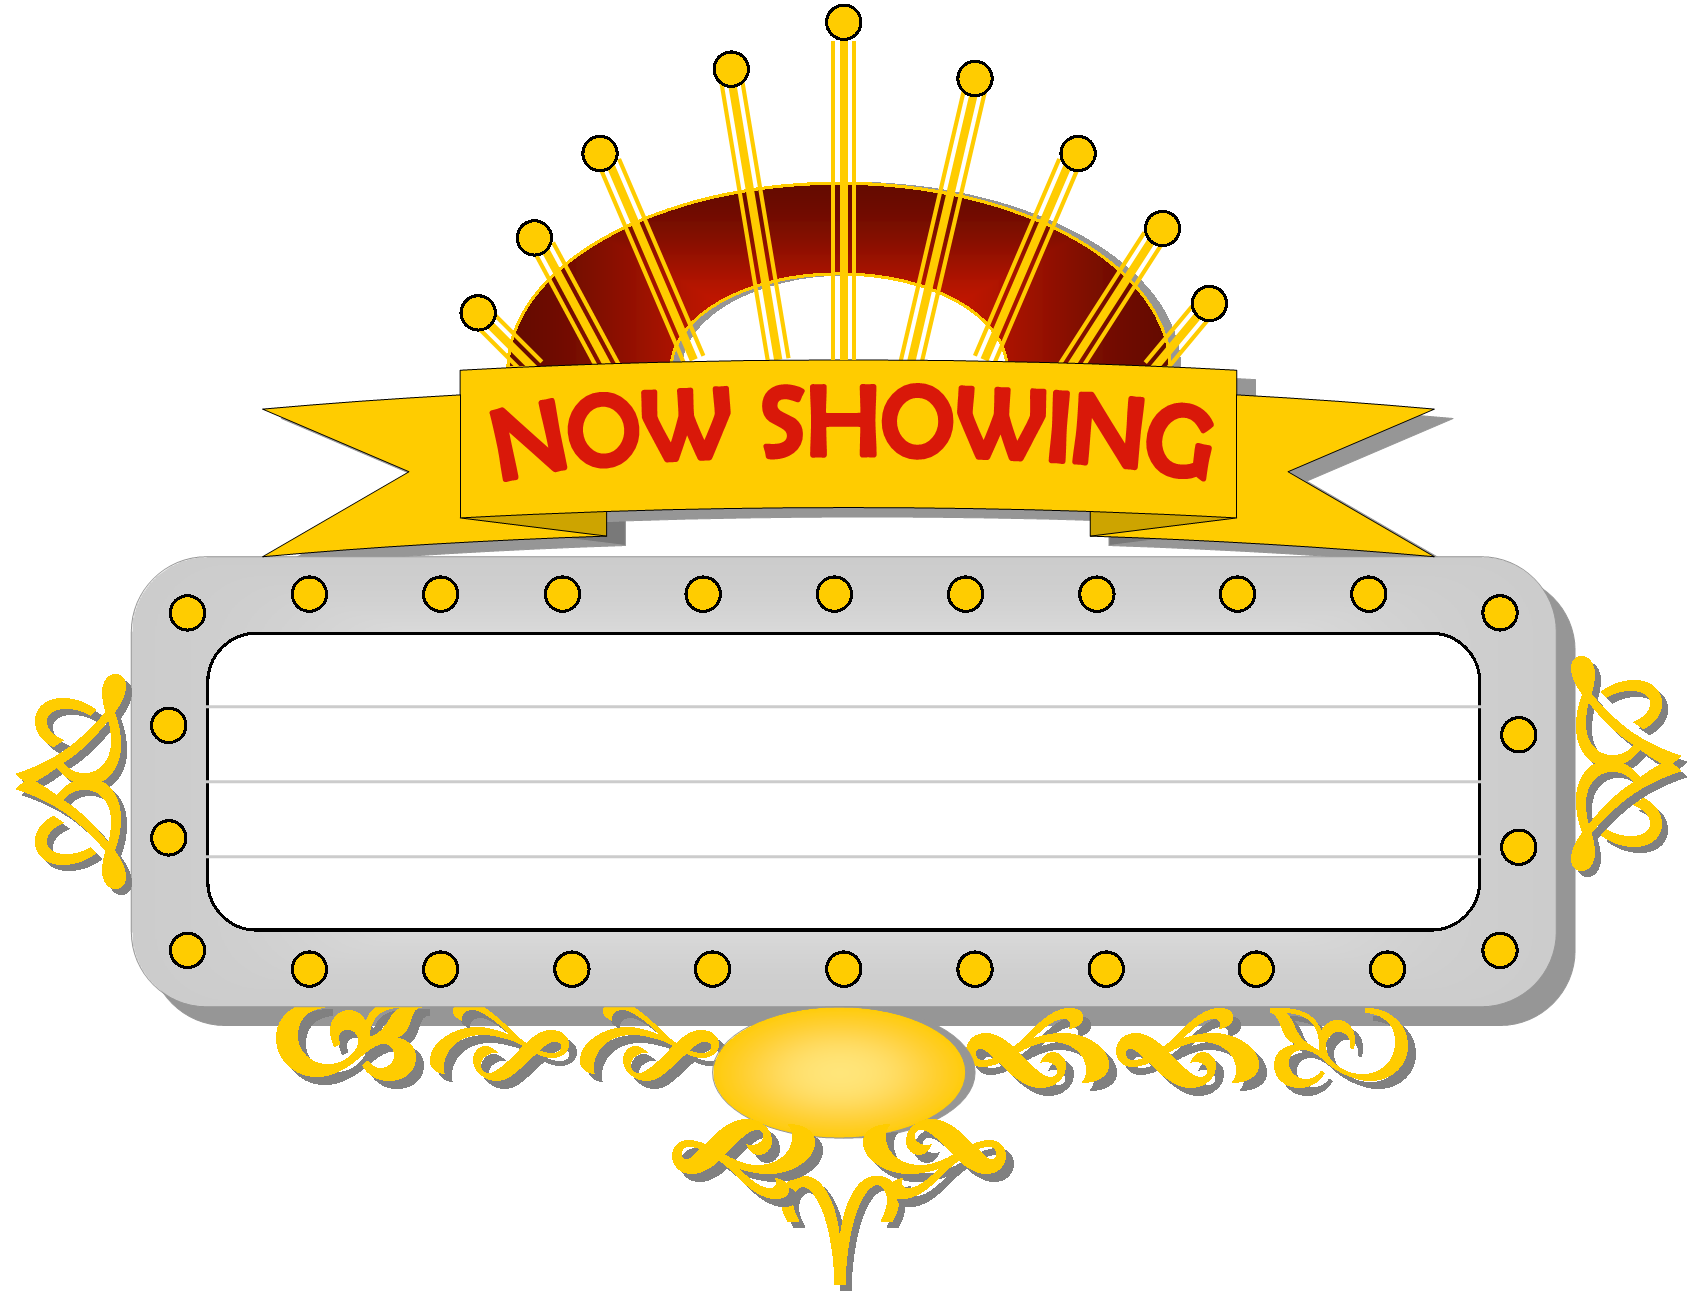 Lighting marquee